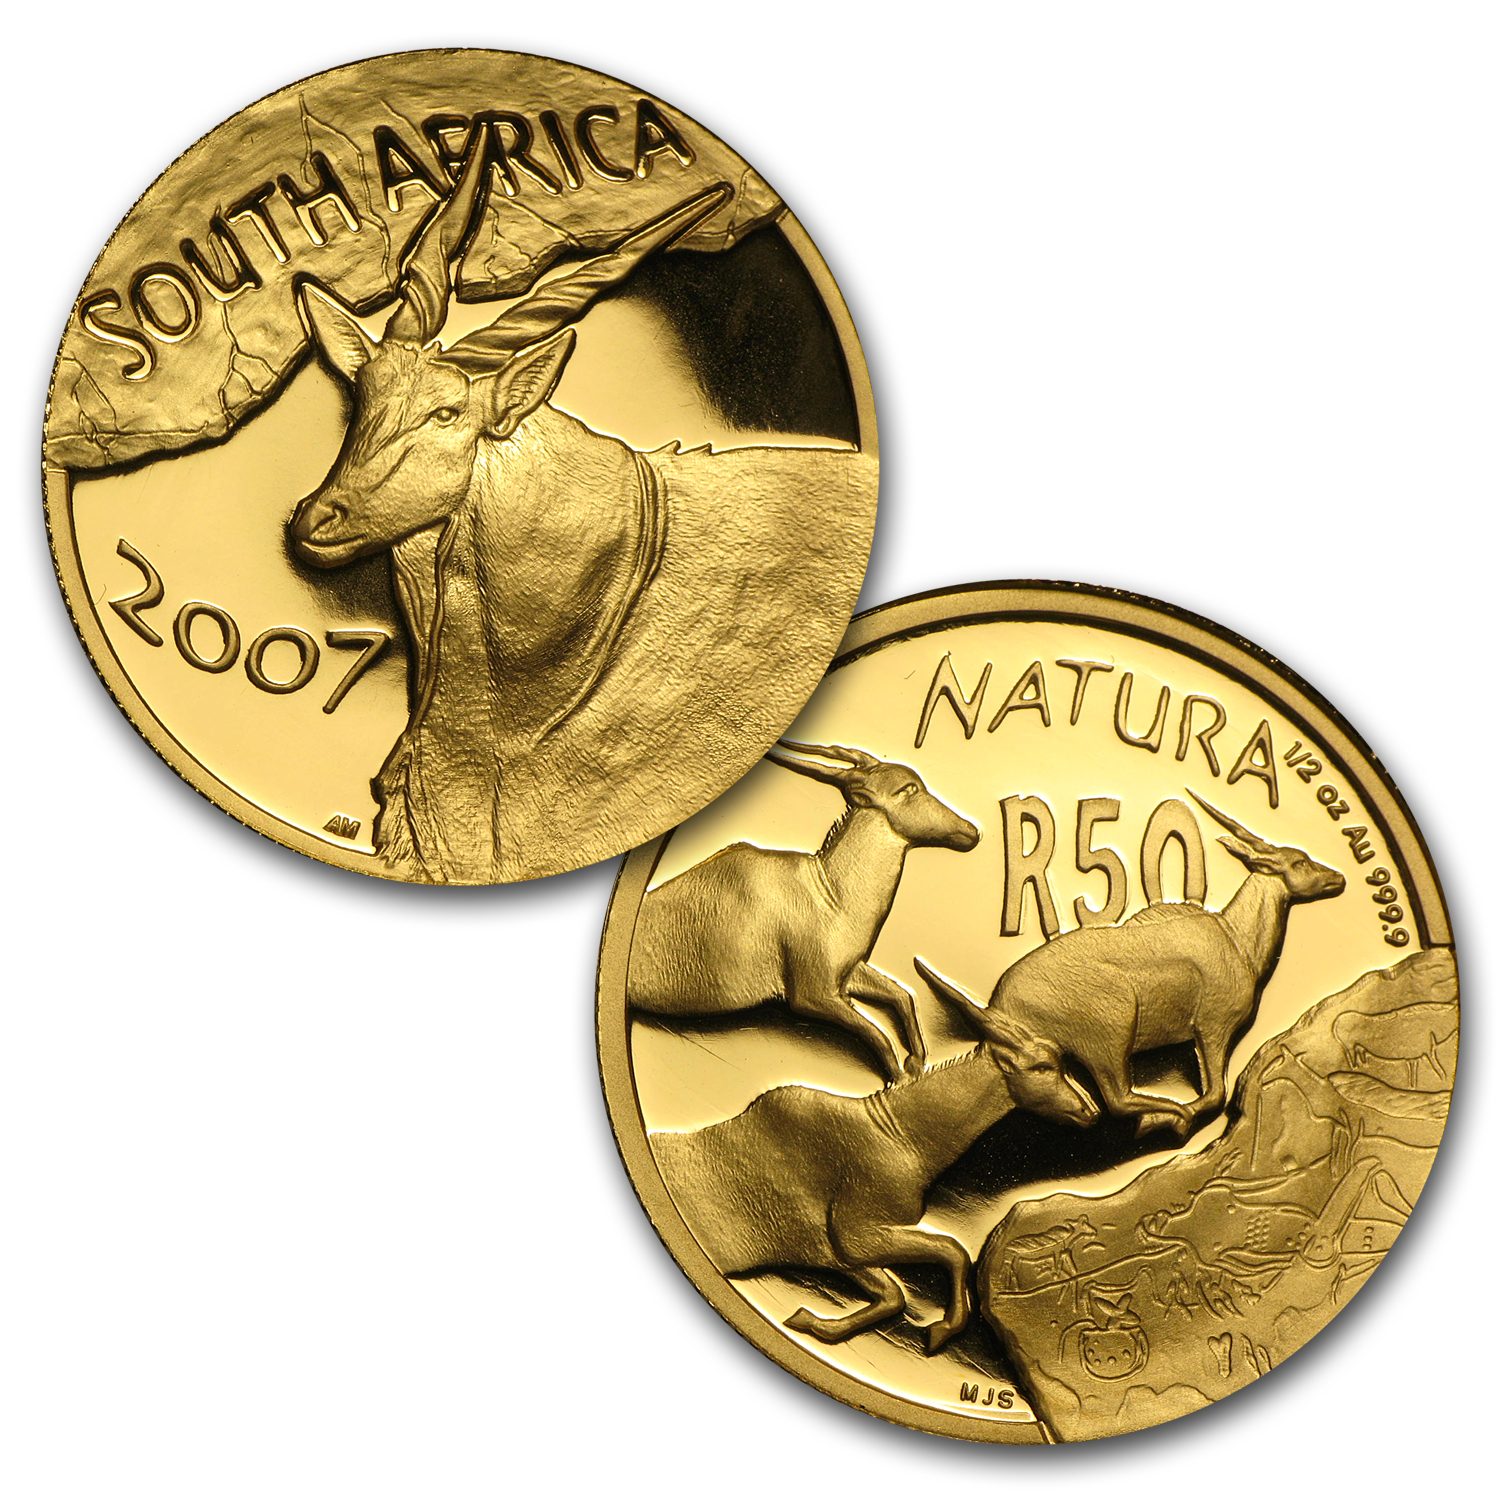 2007 South Africa 3-Coin Gold Natura Eland Proof Set